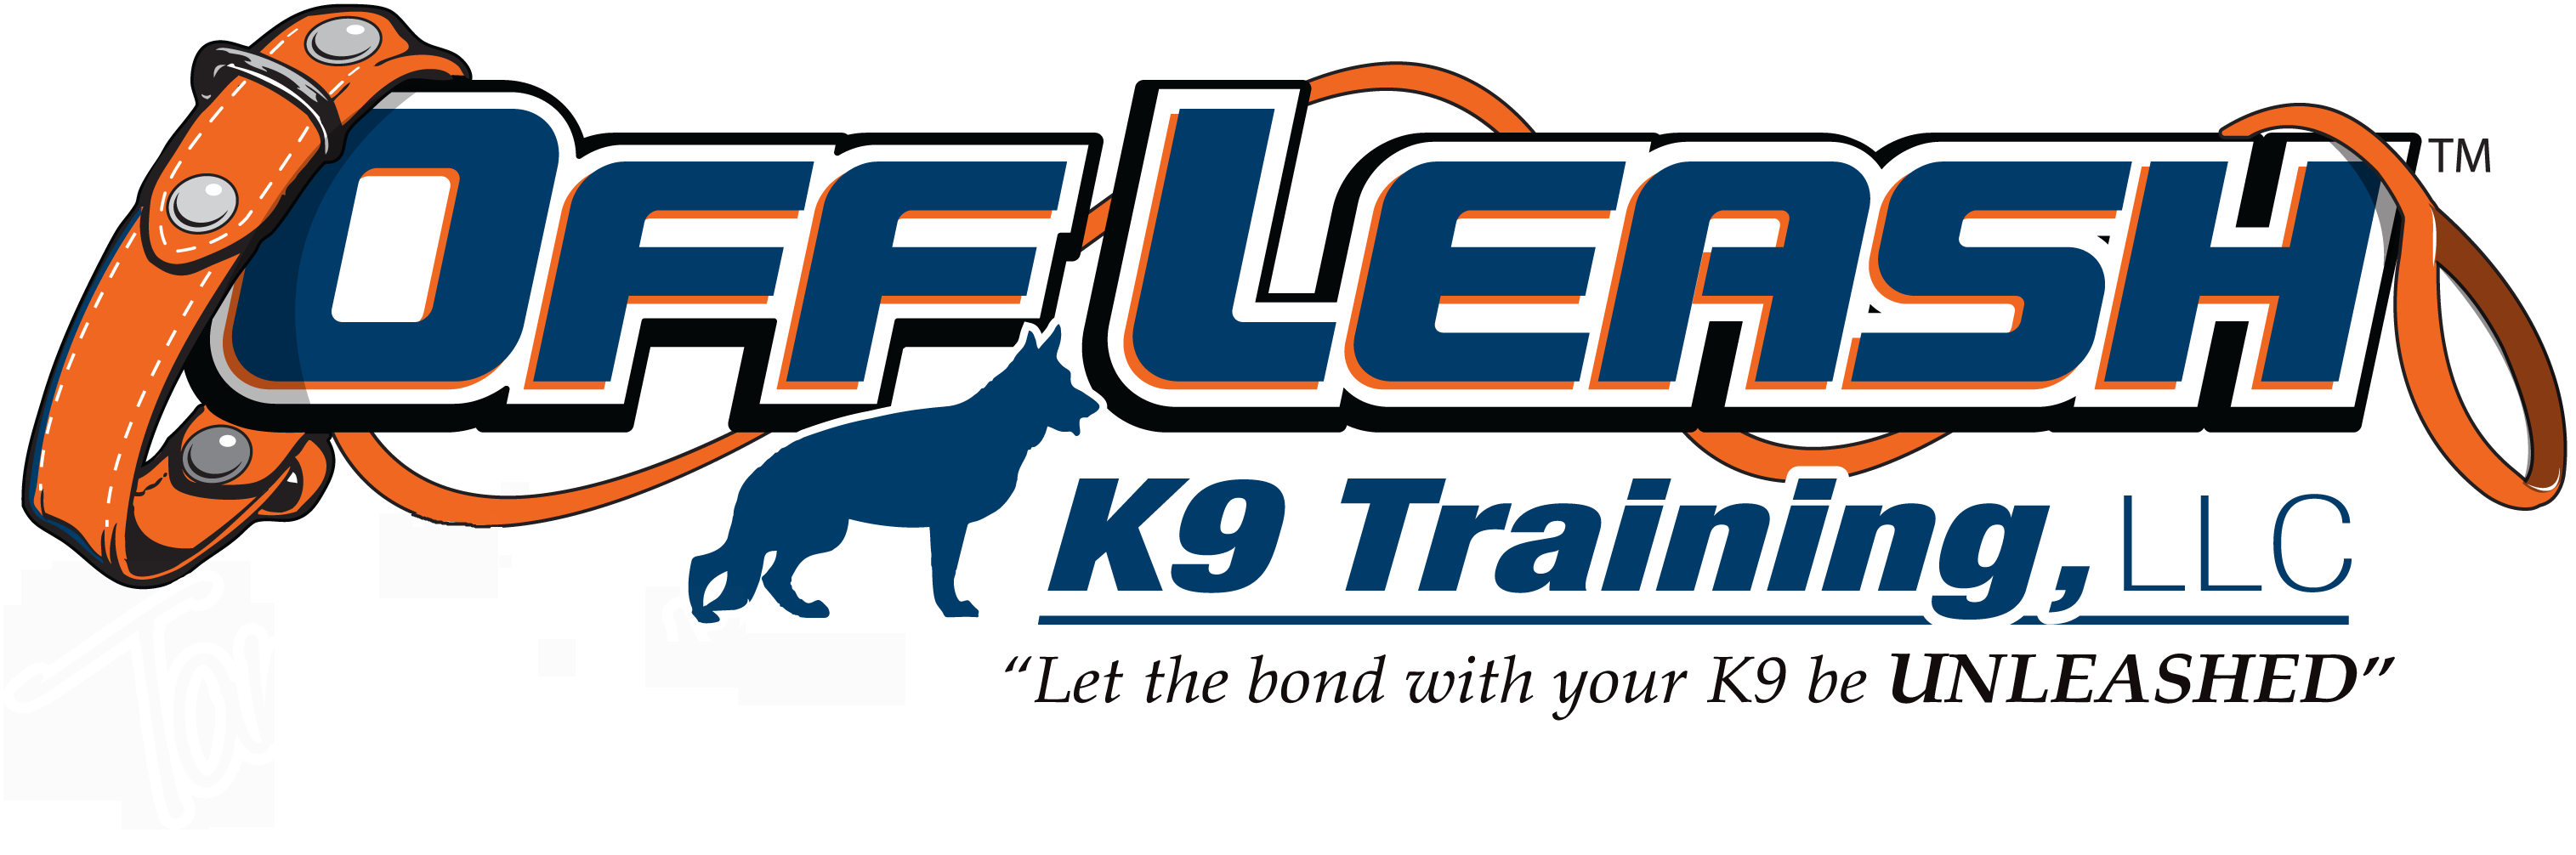 Mclean Offleash K9 Dog Training